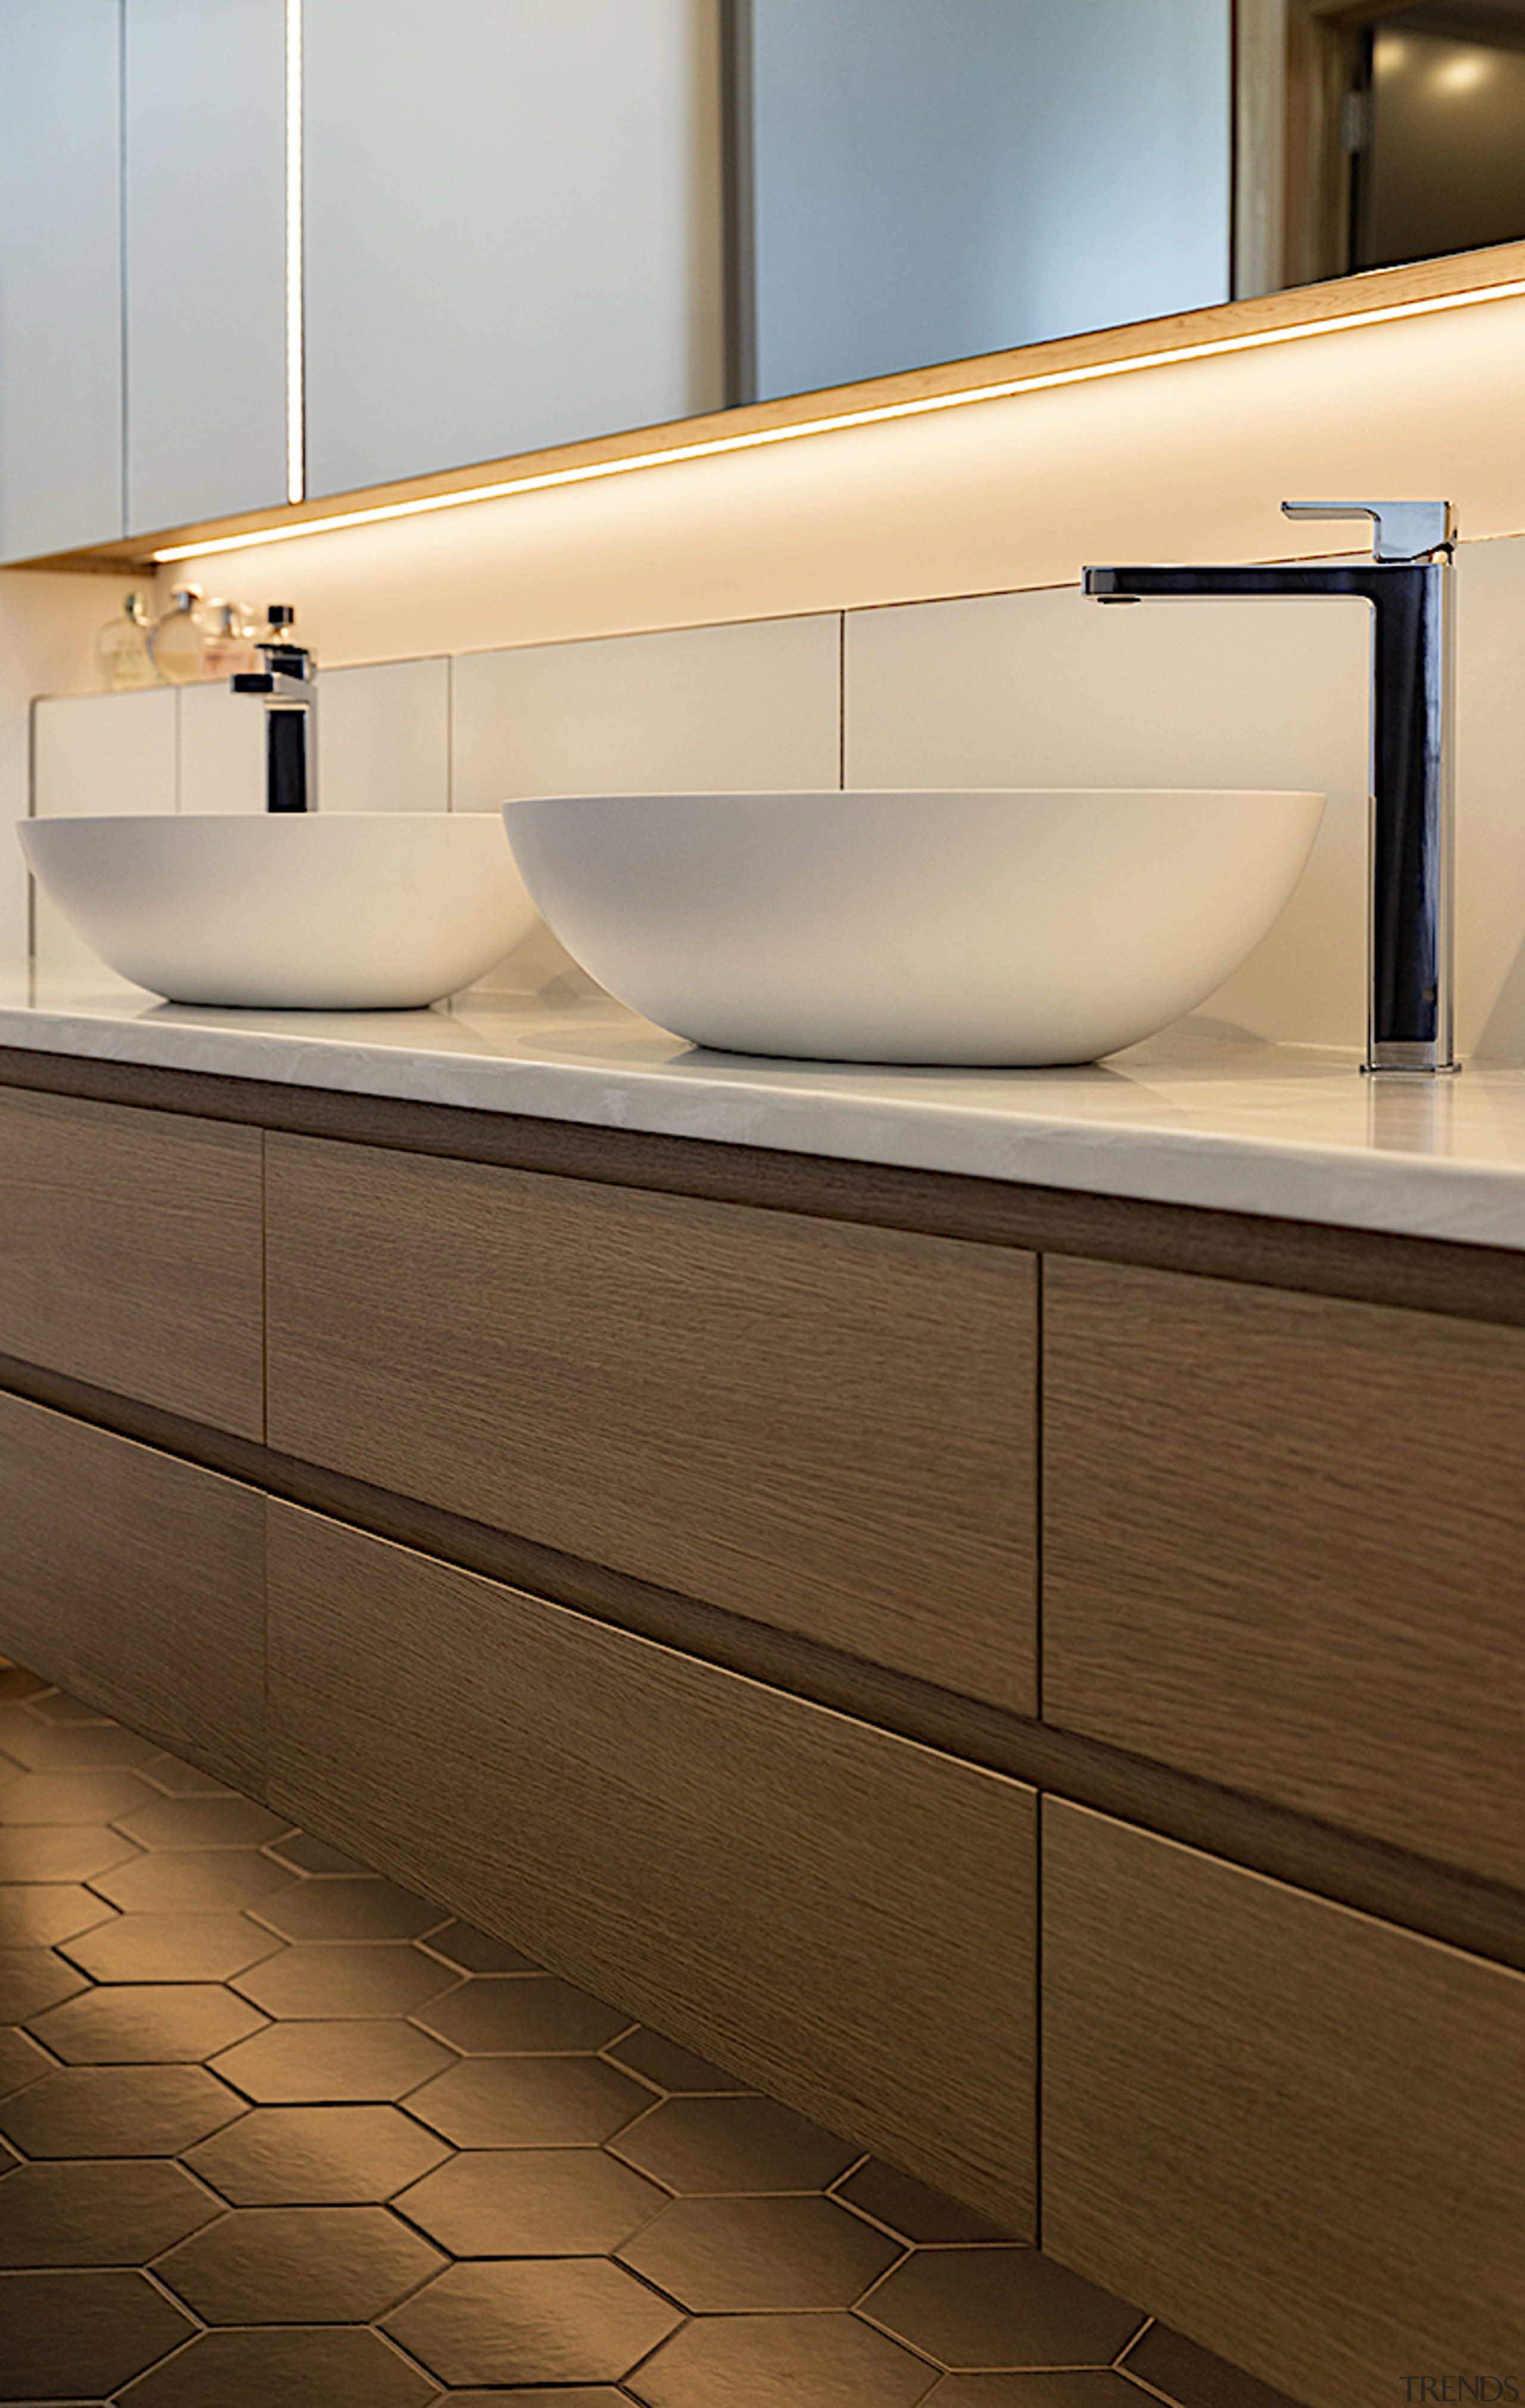 Finely crafted wood joinery runs right through the